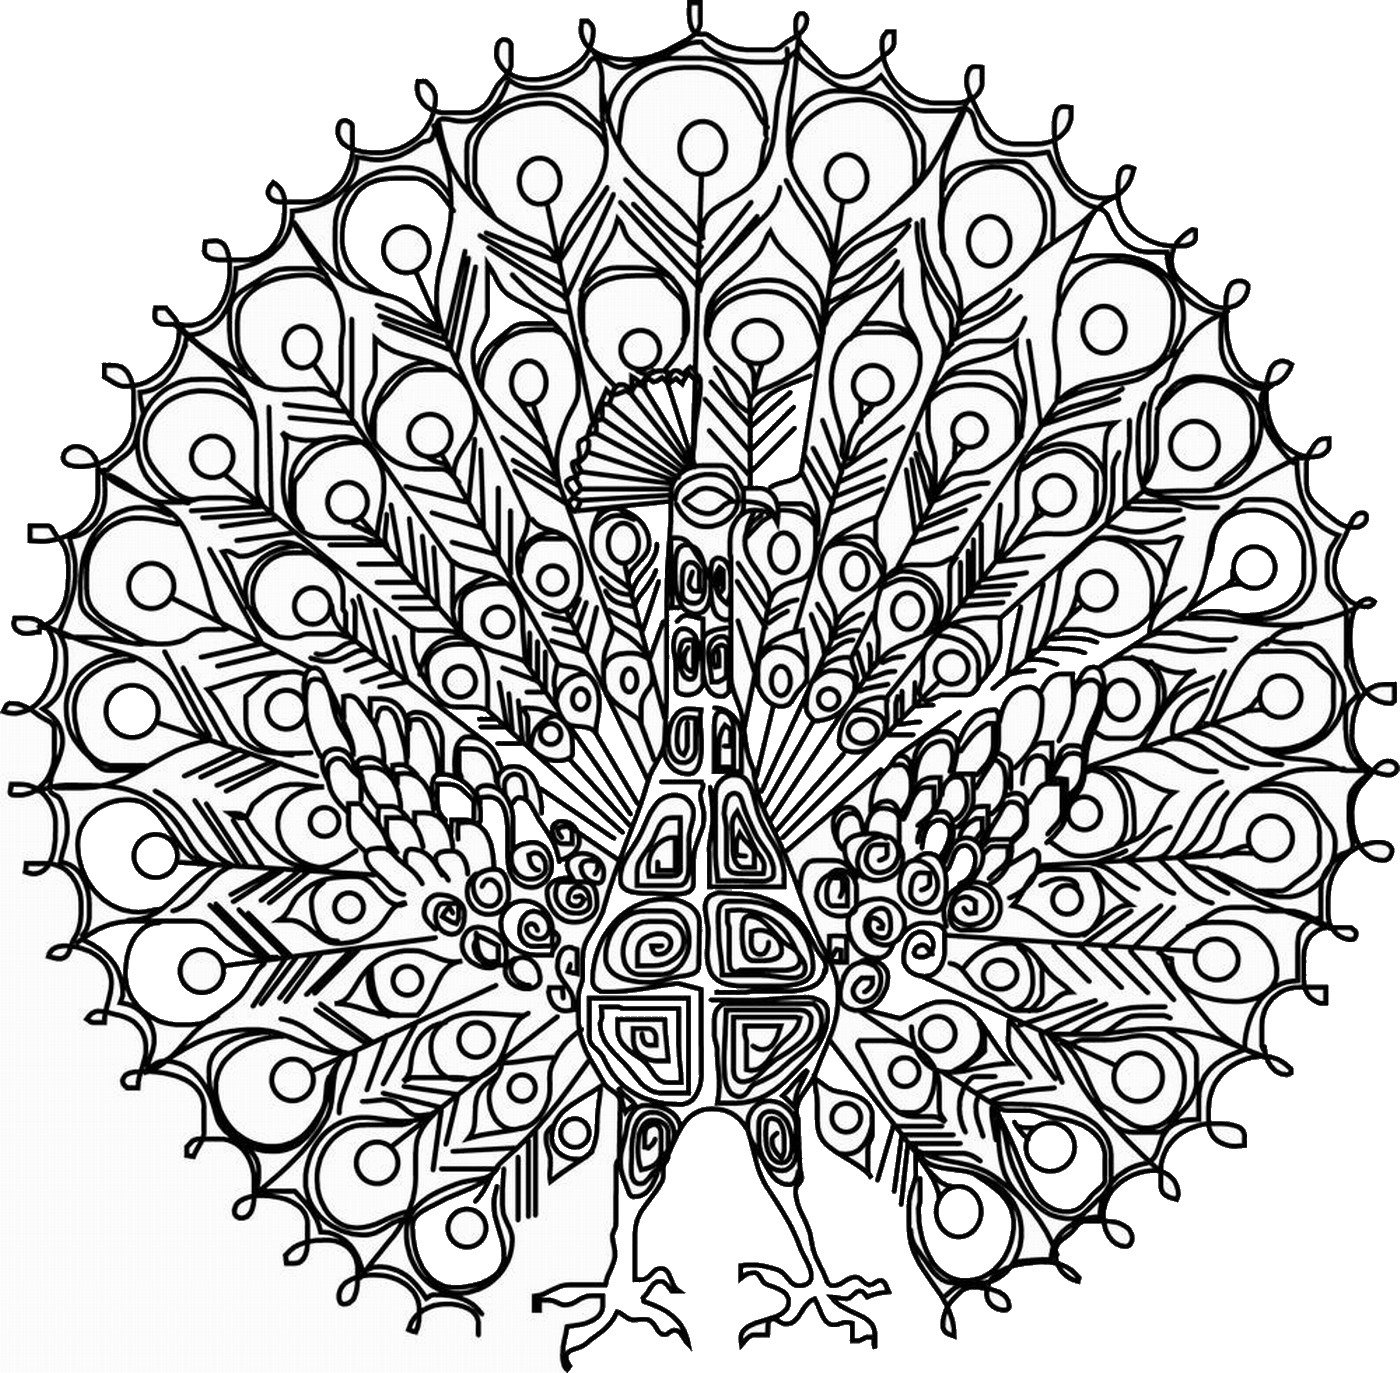 coloring peacock color page beautiful peacock adult colouring adult colouring page peacock coloring color